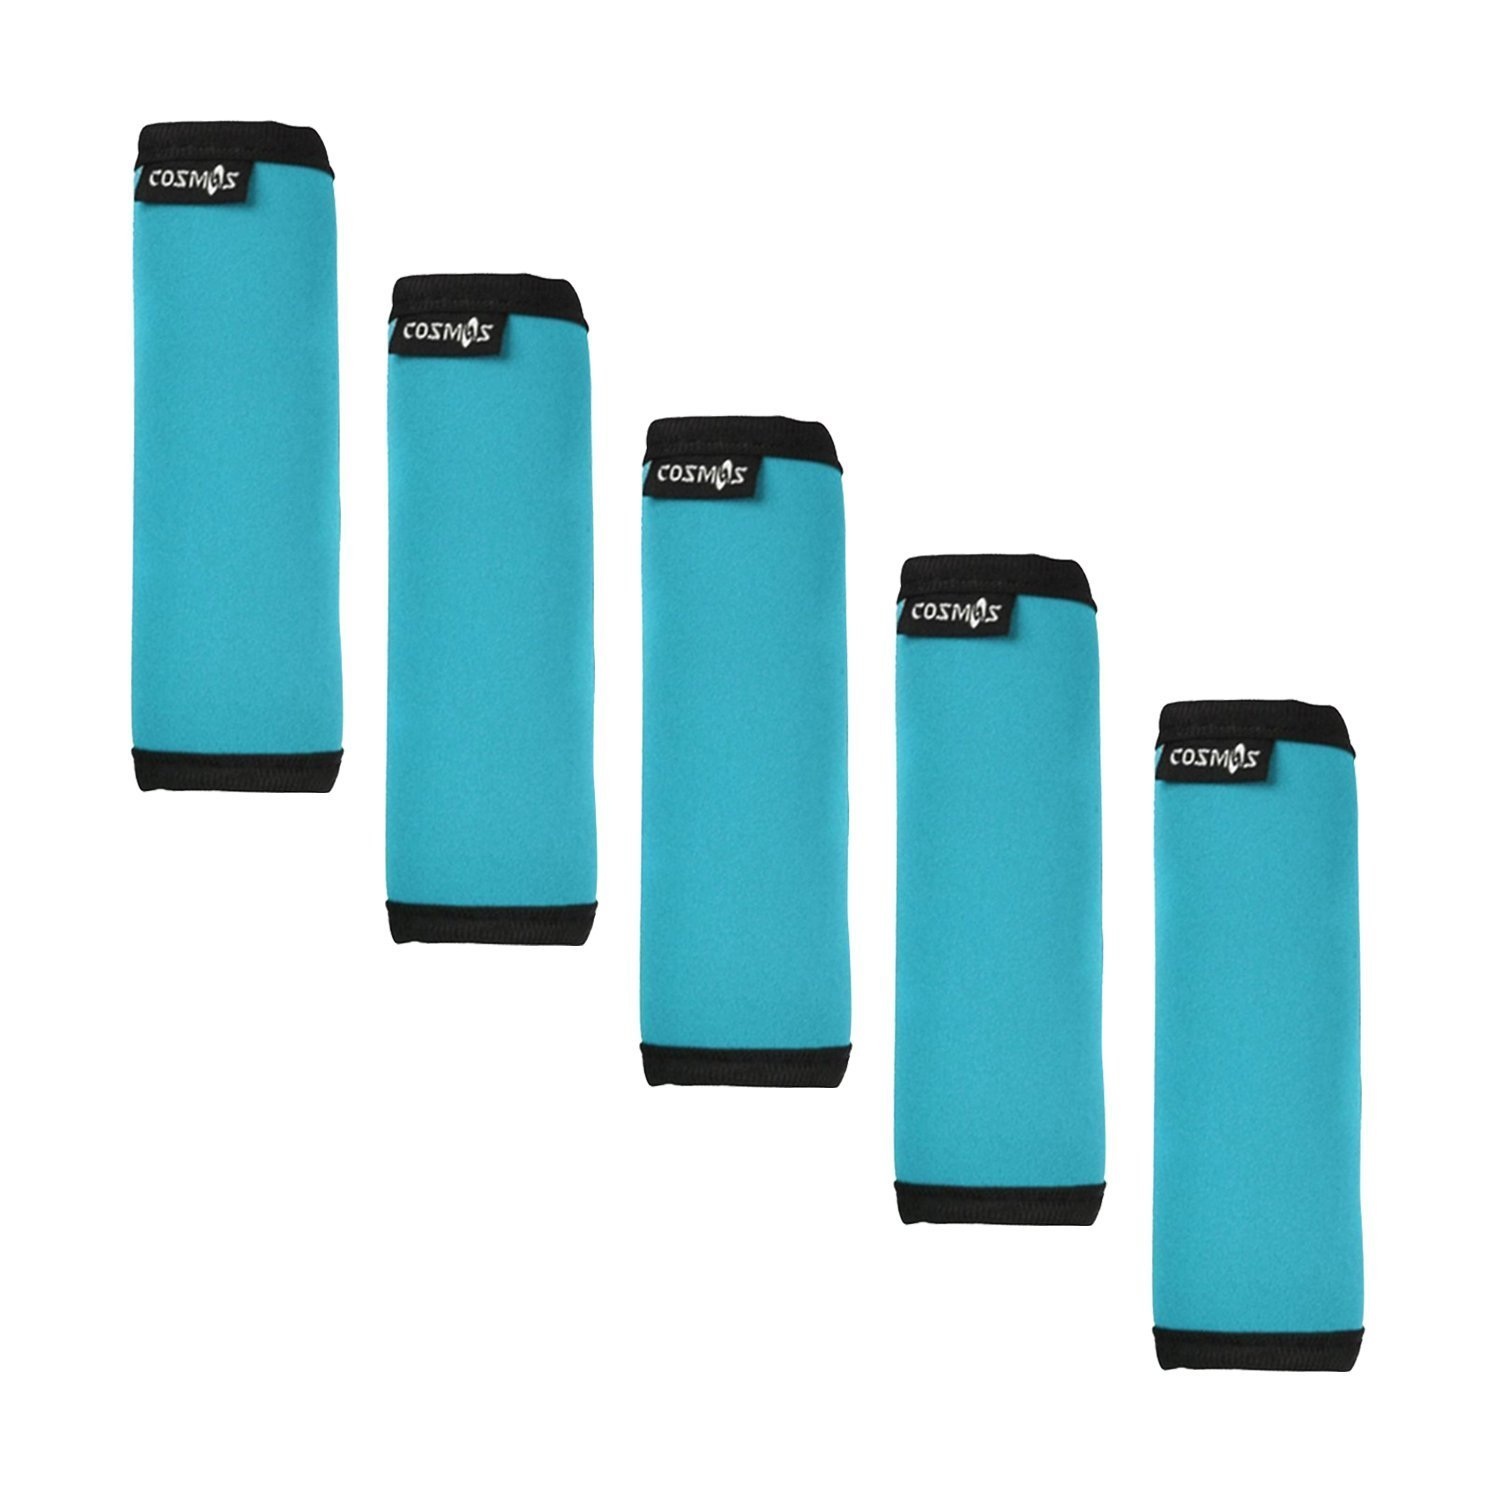 Cosmos ® 5 Pcs Aqua Blue Comfort Neoprene Handle Wraps/Grip/Identifier + Light Blue Luggage Tags + Light Blue Nylon Add a Bag Luggage Strap by Cosmos (Image #3)